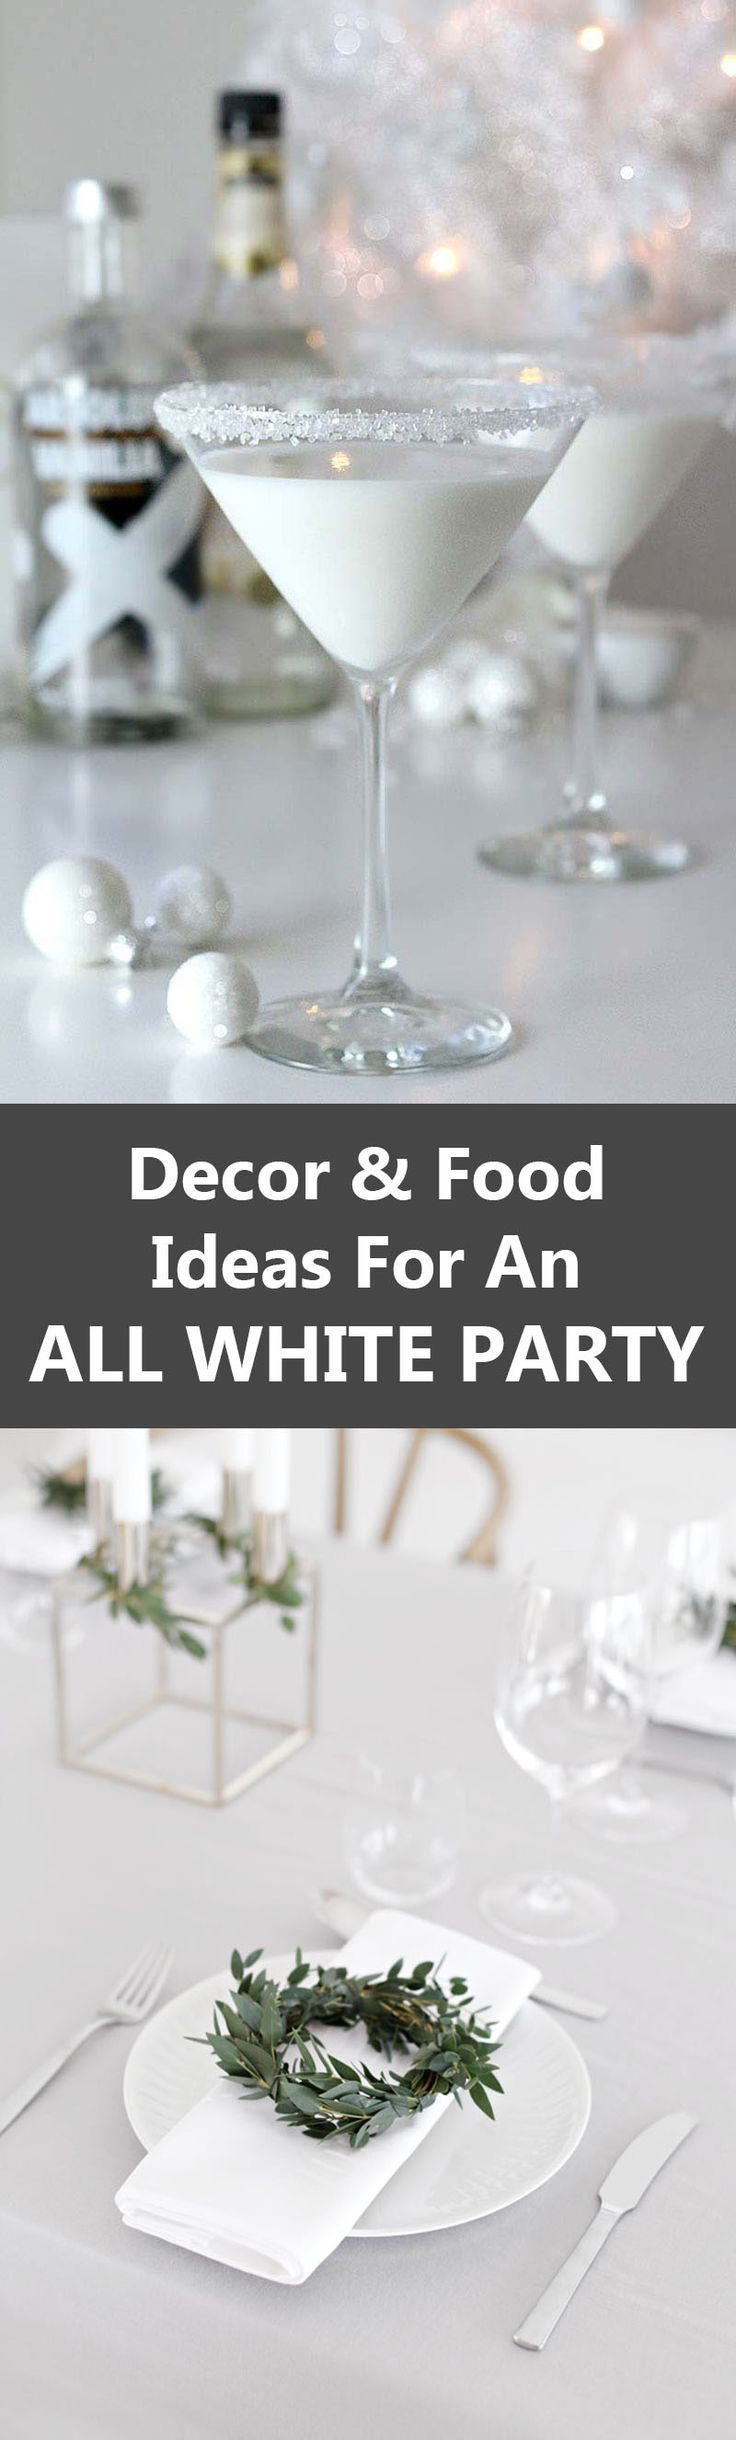 Decor And Food Ideas For An All White Party Decor Food